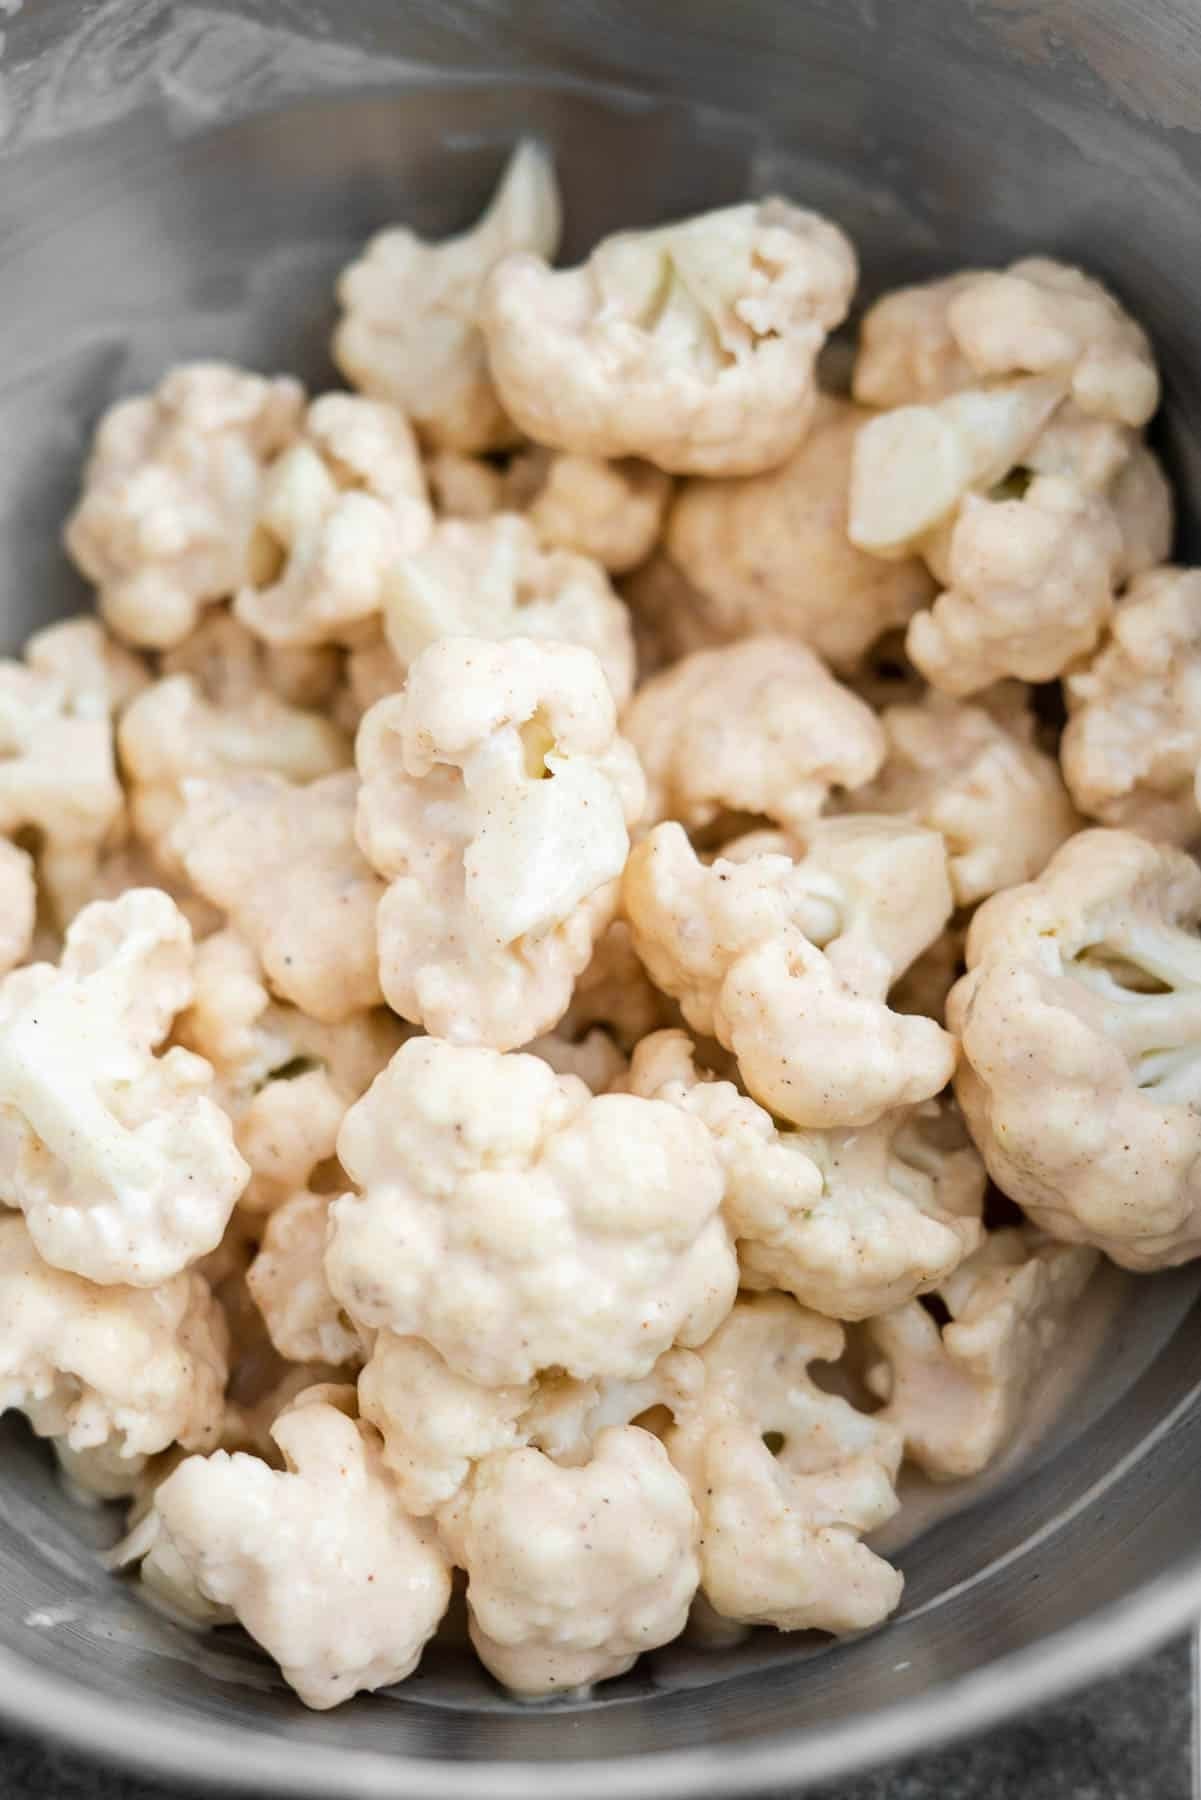 cauliflower florets covered in a spiced batter in a metal bowl